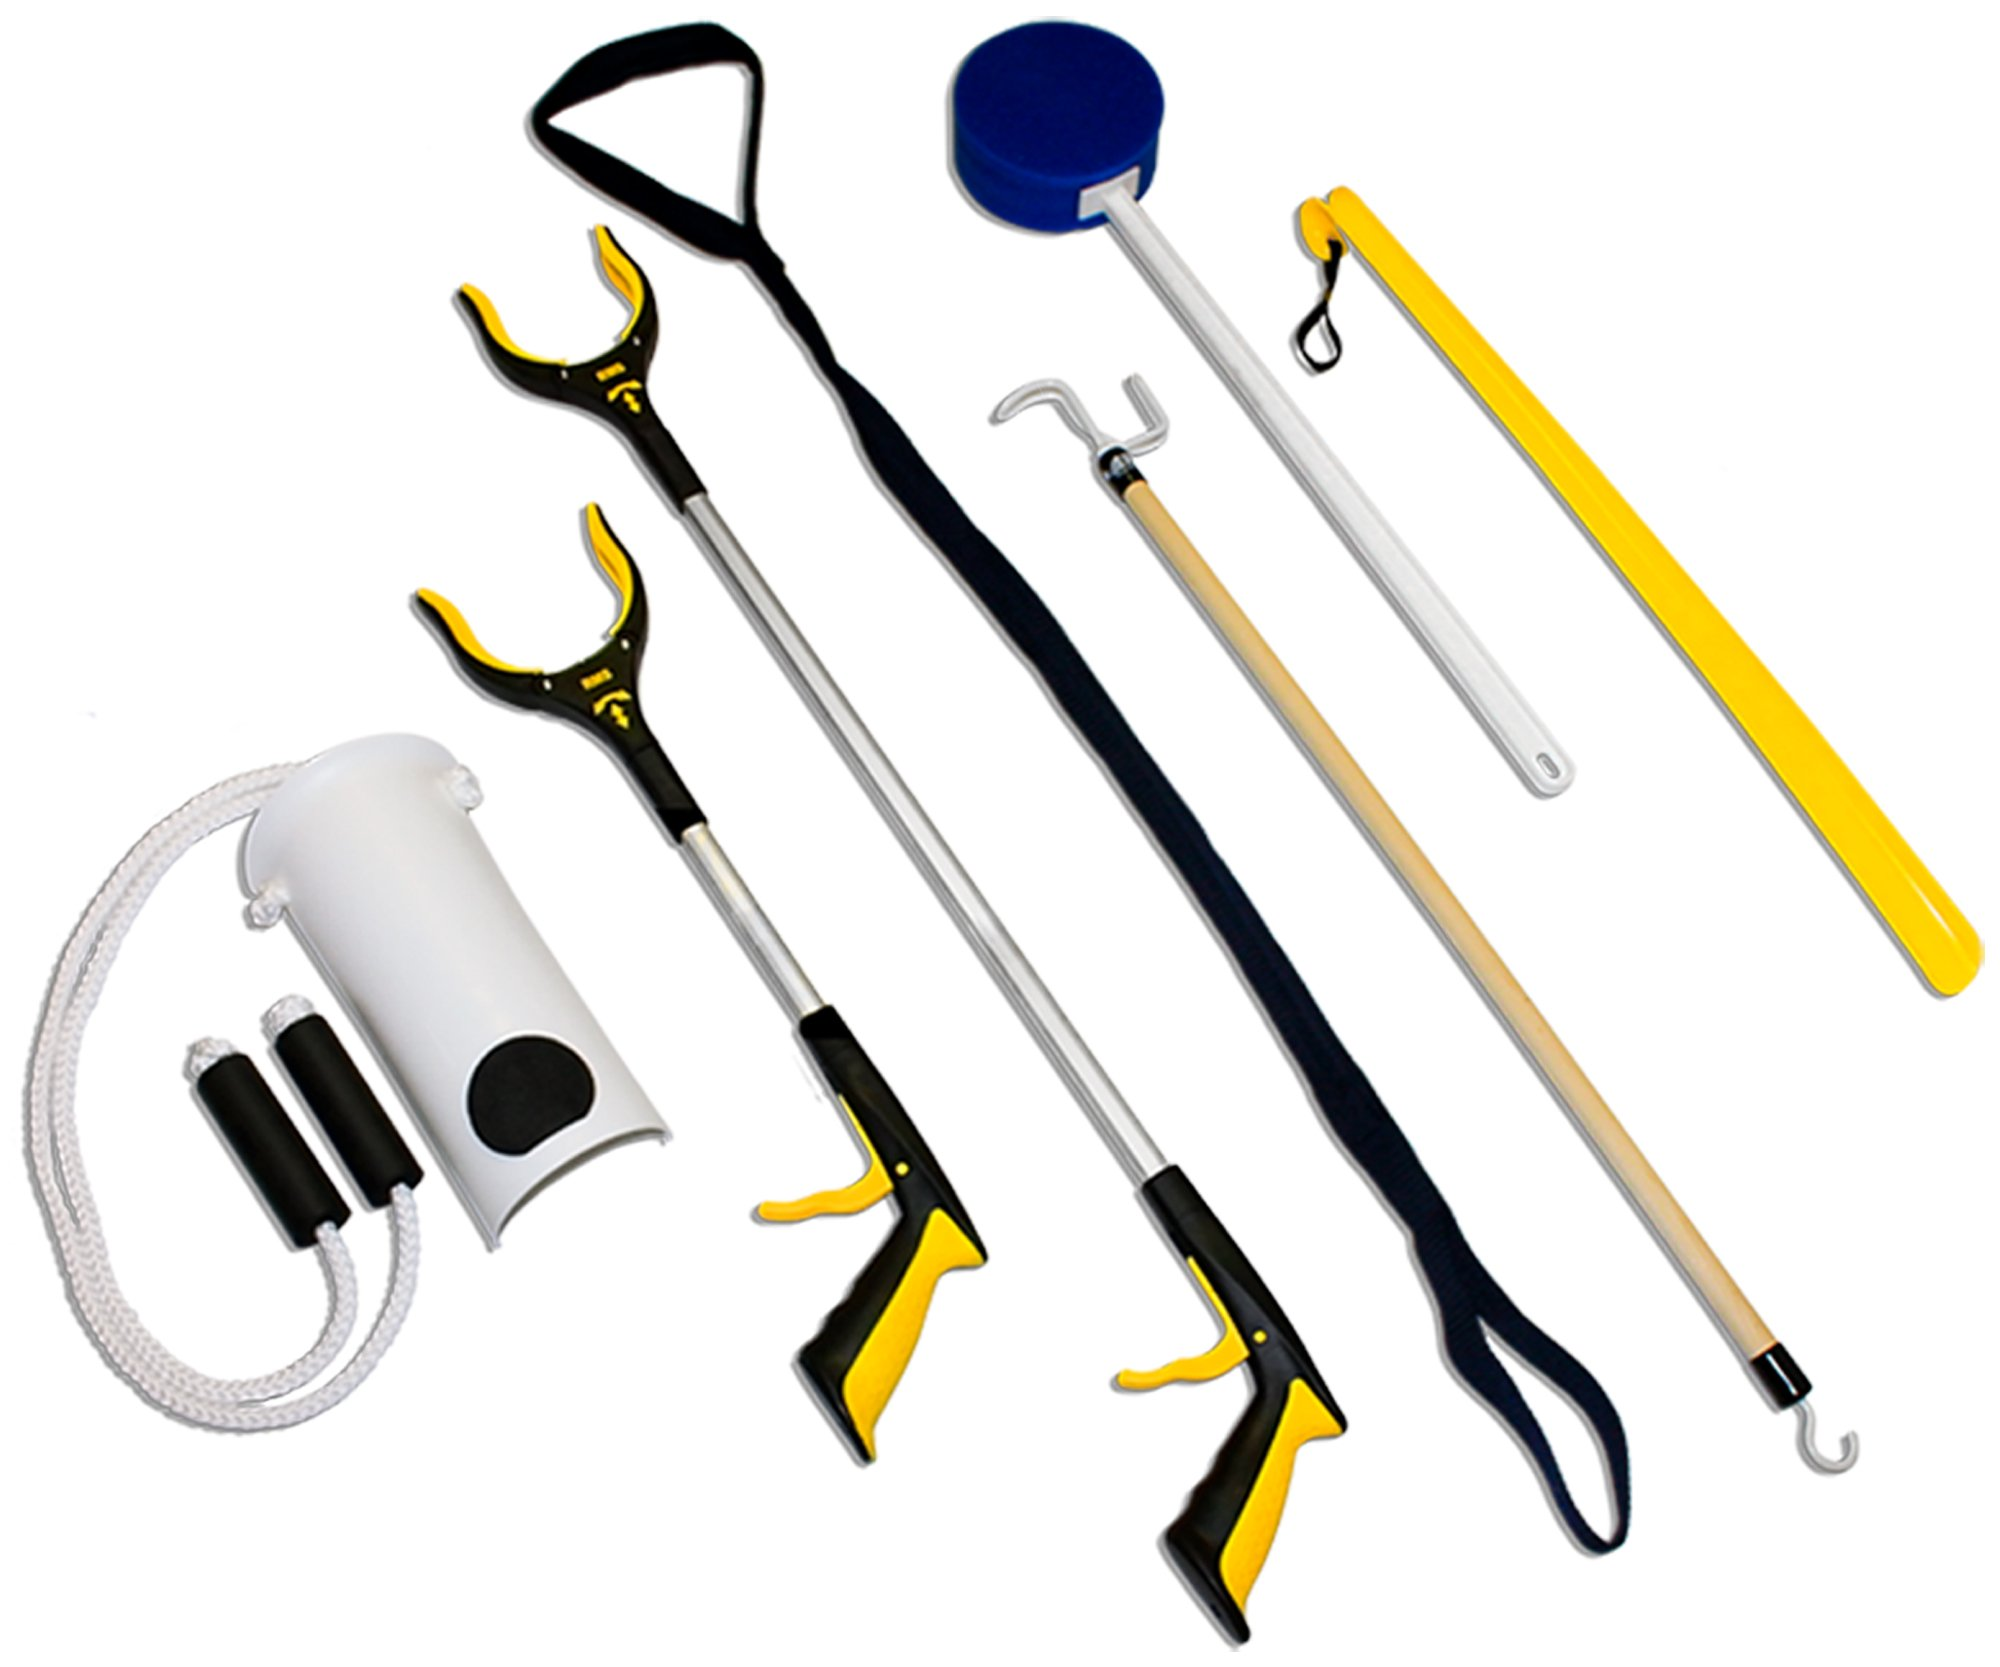 RMS 7-Piece Hip Knee Replacement Kit with Leg Lifter, 19 and 32 inch Rotating Reacher Grabber, Long Handle Shoe Horn, Sock Aid, Dressing Stick, Bath Sponge - Ideal for Knee or Back Surgery Recovery by RMS Royal Medical Solutions, Inc.